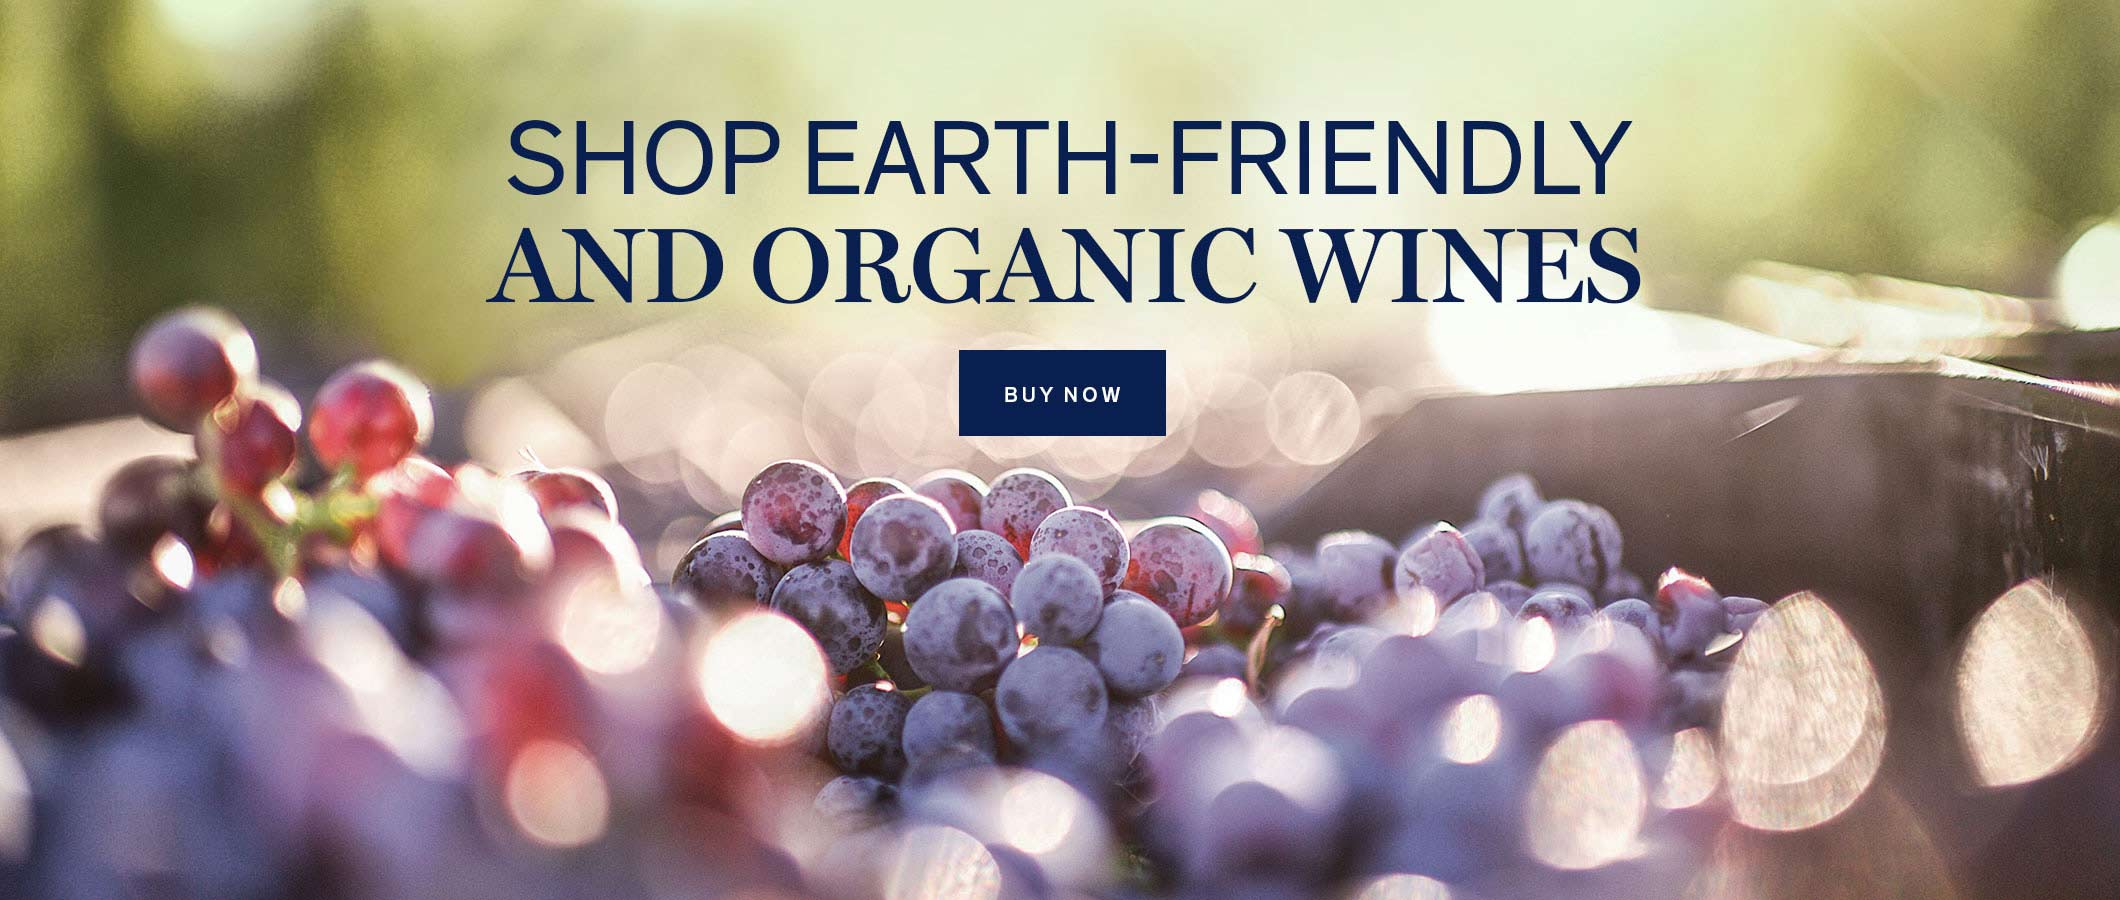 Shop Earth-friendly and Organic Wines  BUY NOW